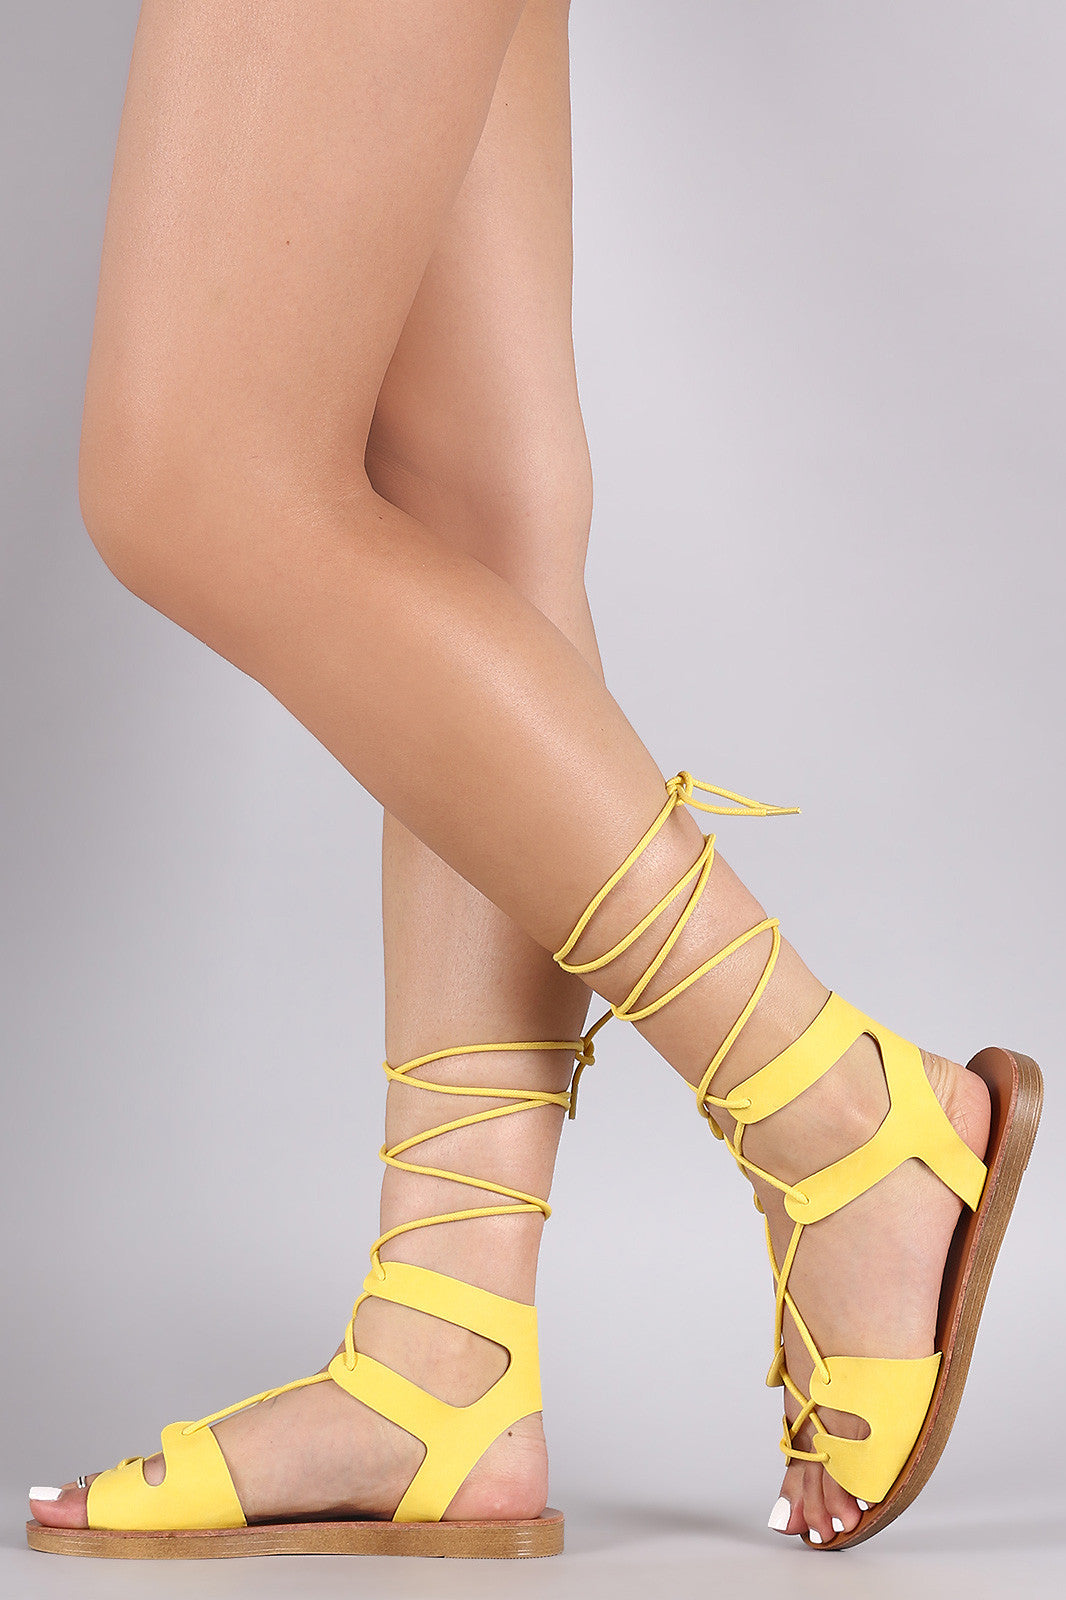 Breckelle Strappy Lace-Up Gladiator Flat Sandal - Thick 'N' Curvy Shop - 5